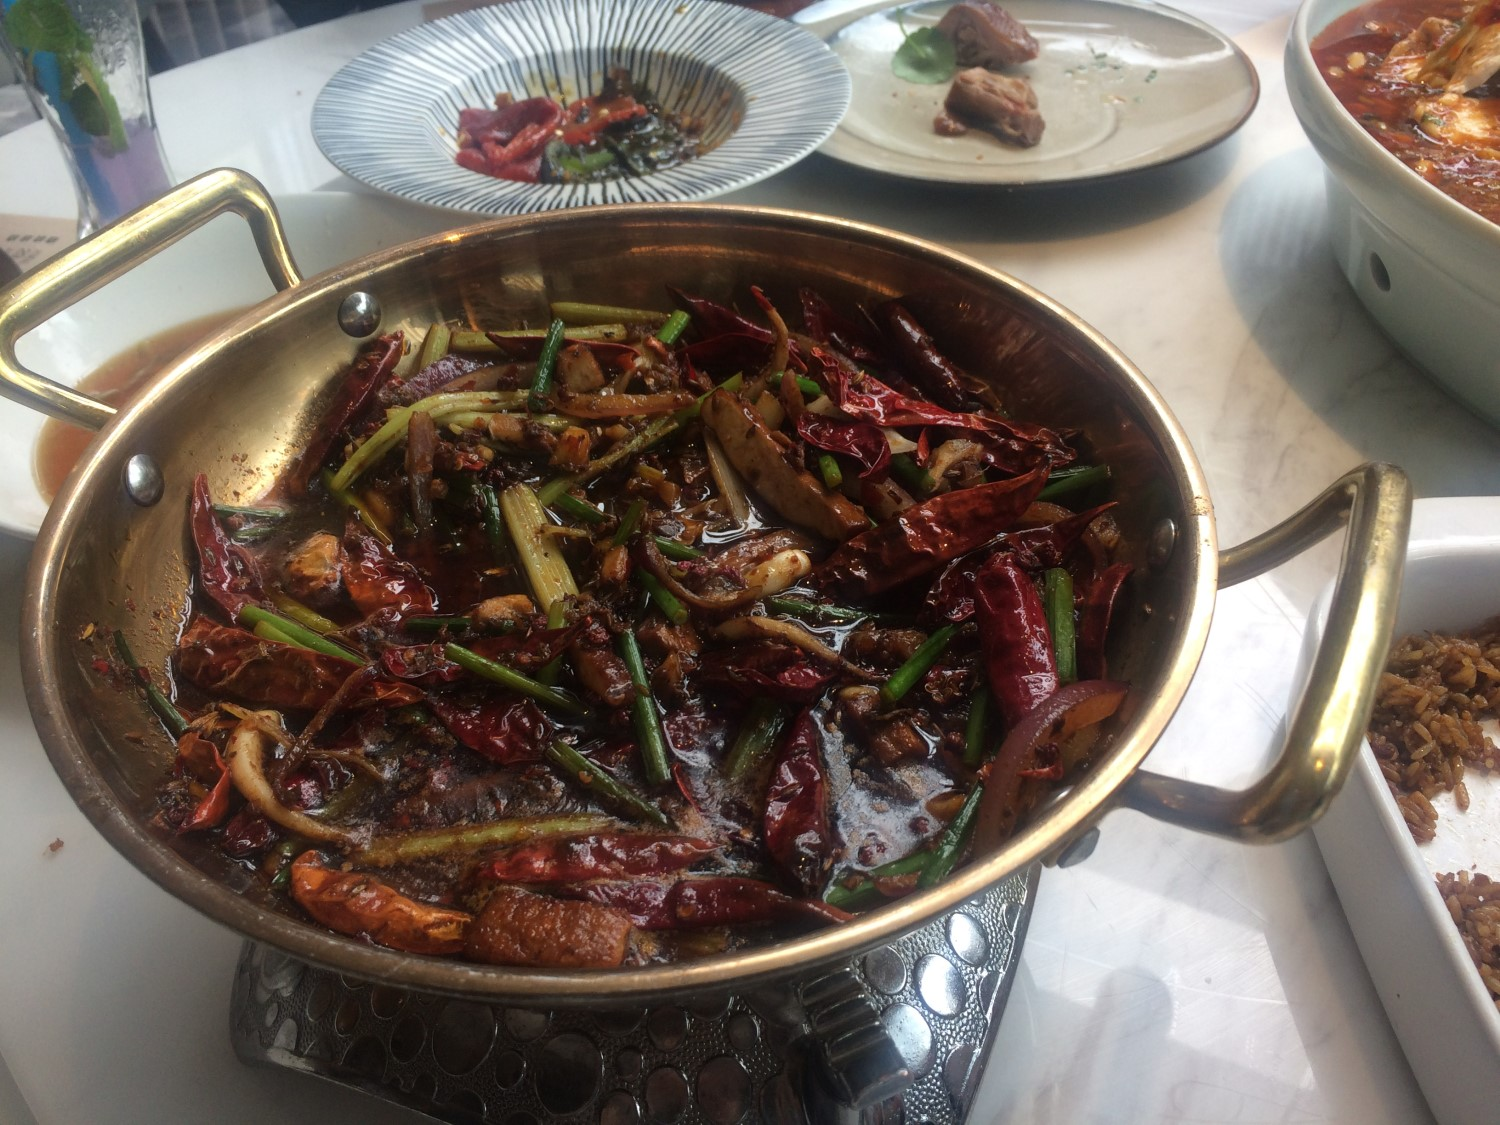 Sichuan spice: while you may not have come across of Chengdu, you've probably heard of the region's culinary delights